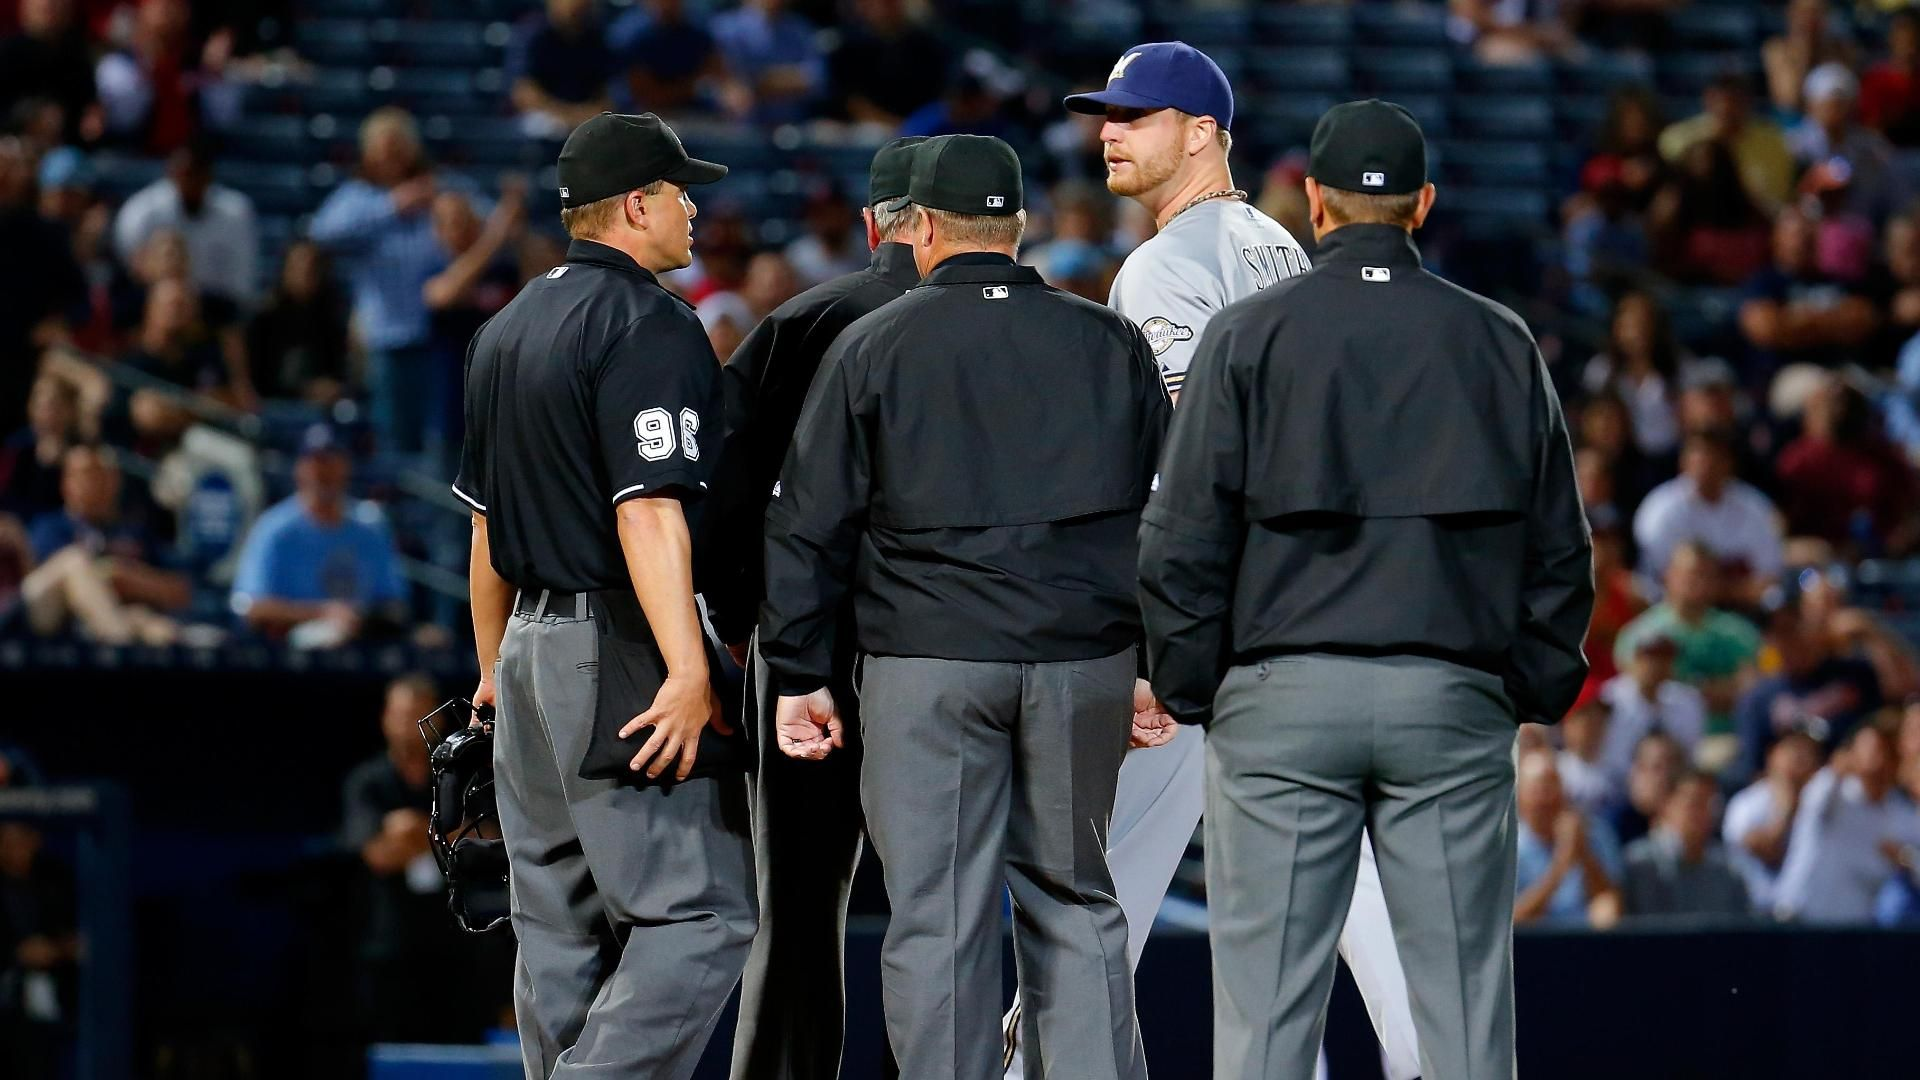 Smith ejected for use of substance in Brewers' loss